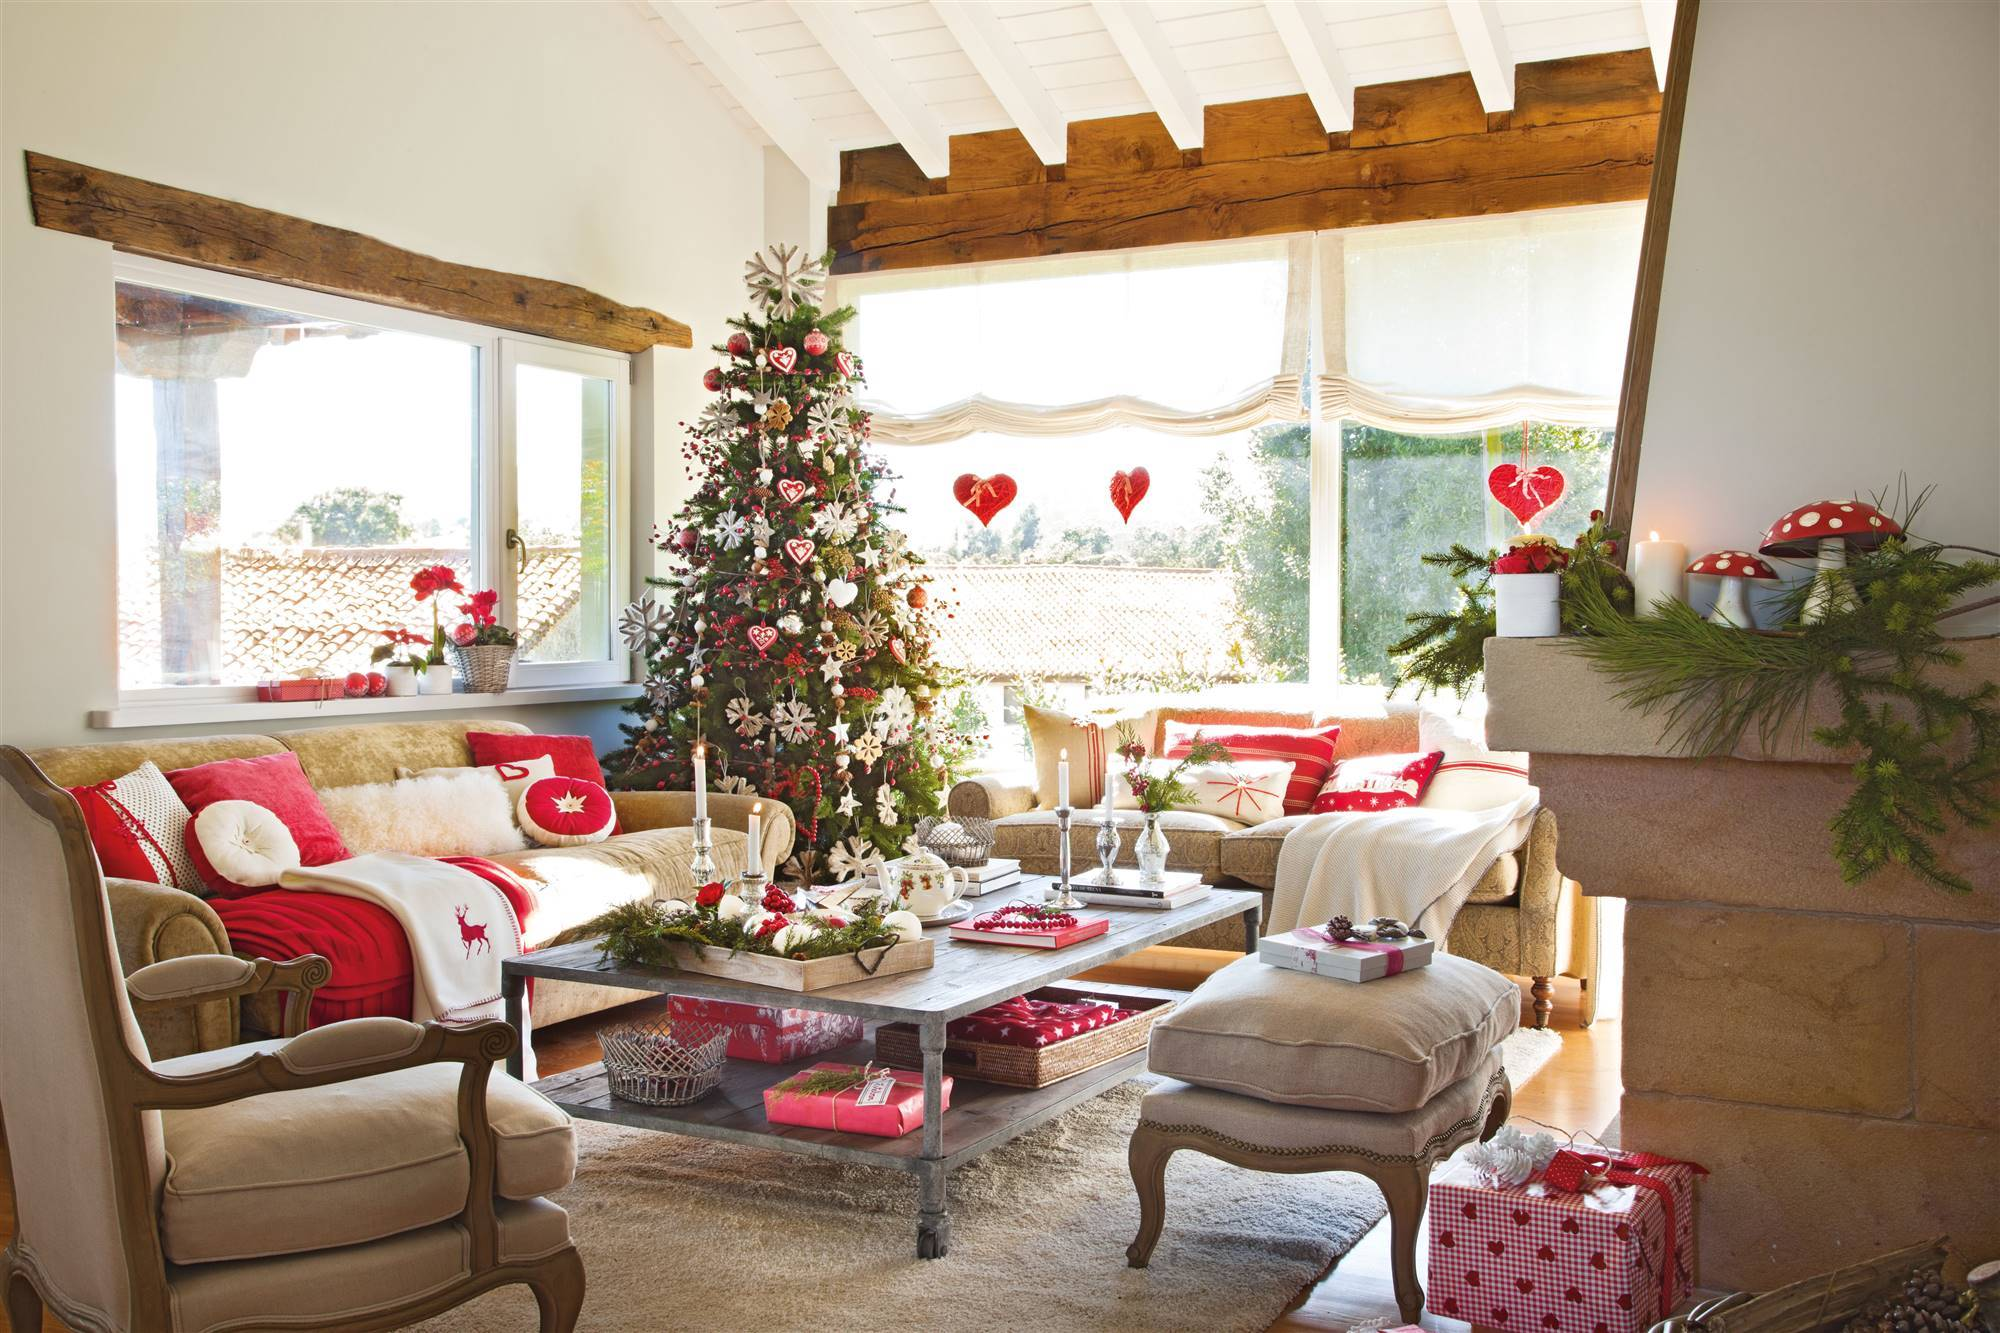 Natale Shabby Chic Rosso.Natale Country Chic In Bianco E Rosso Shabby Chic Mania By